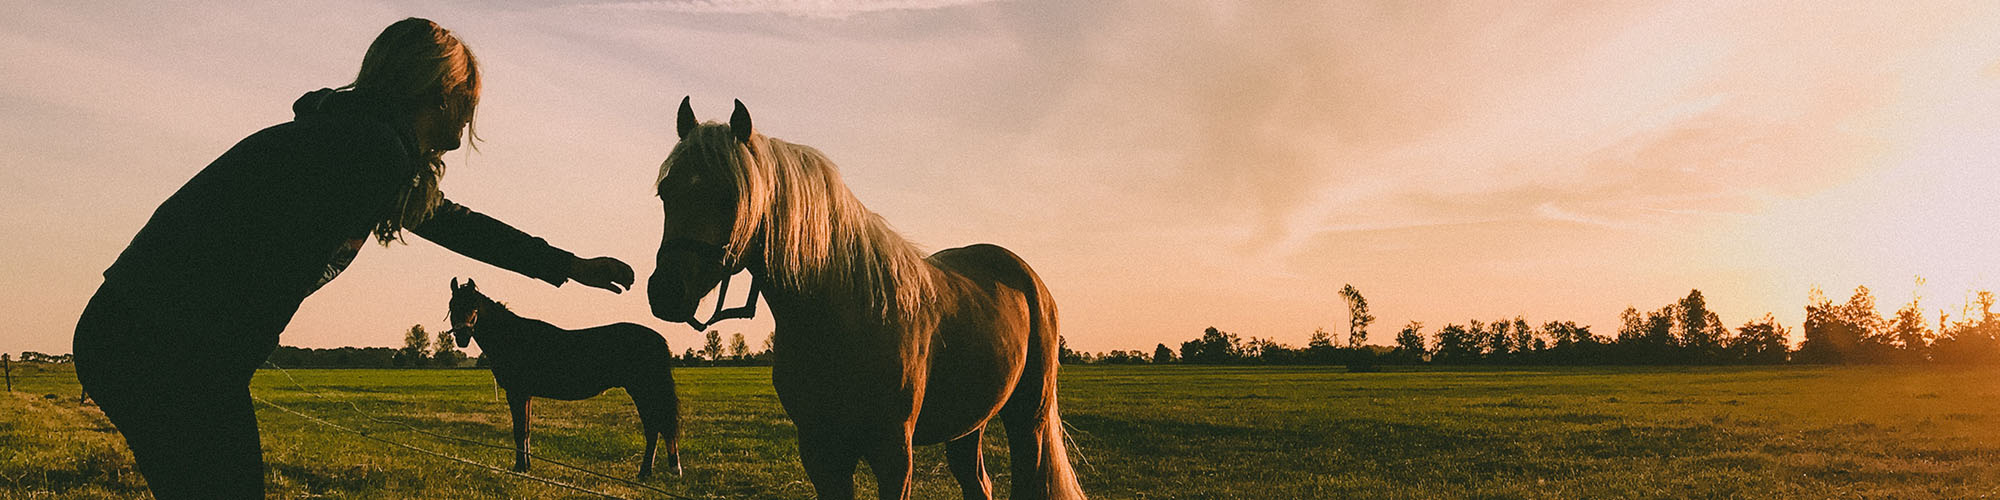 equine therapy horses